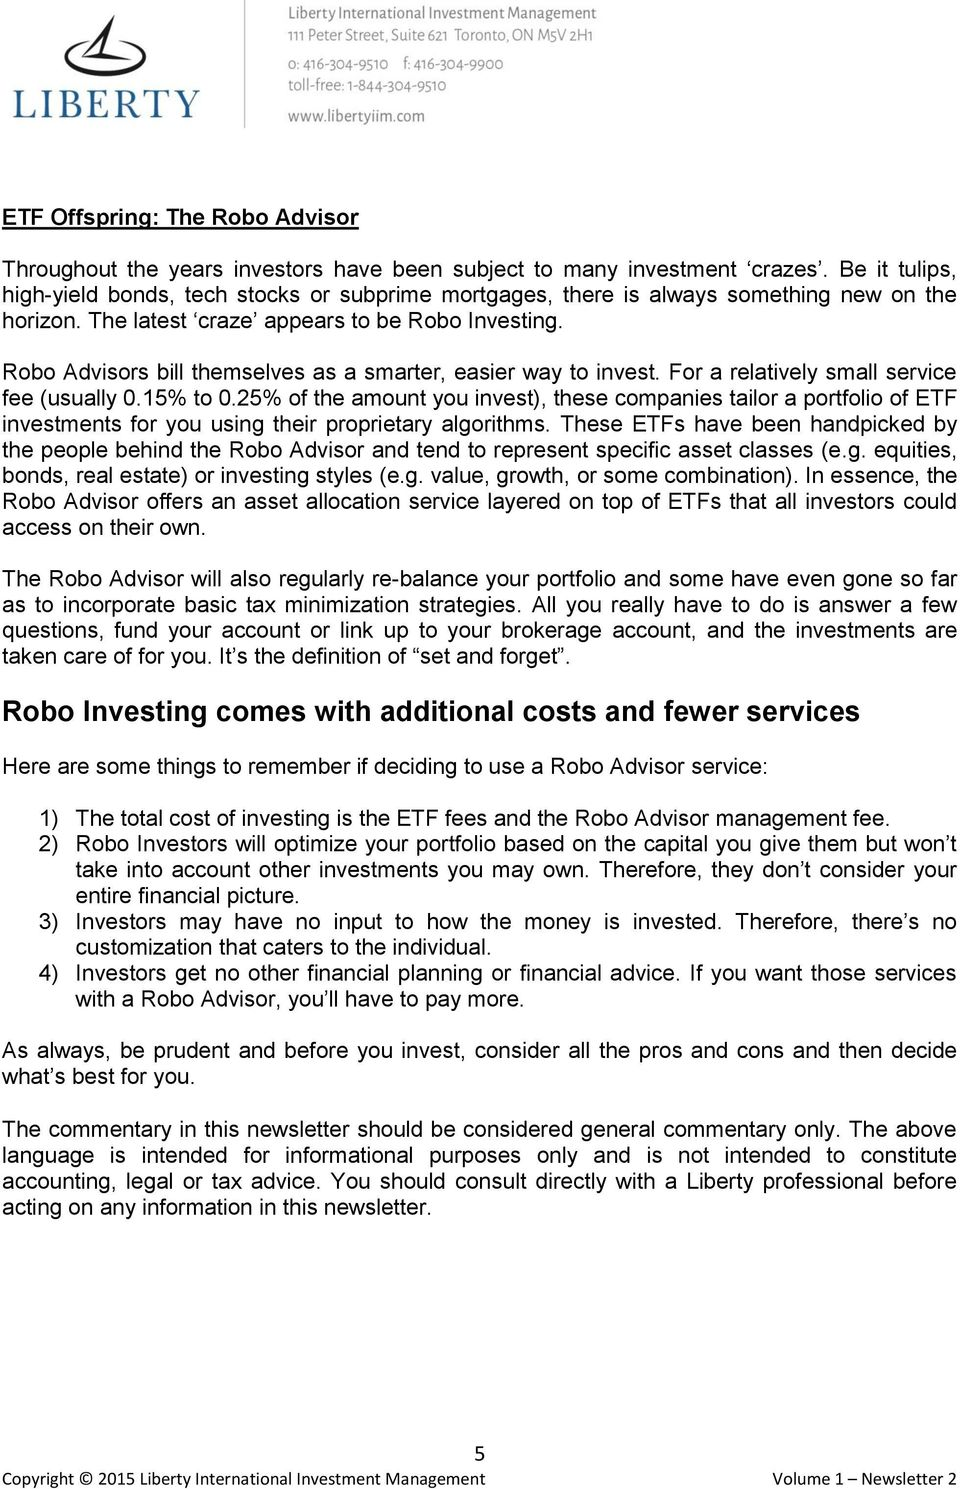 Robo Advisors bill themselves as a smarter, easier way to invest. For a relatively small service fee (usually 0.15% to 0.